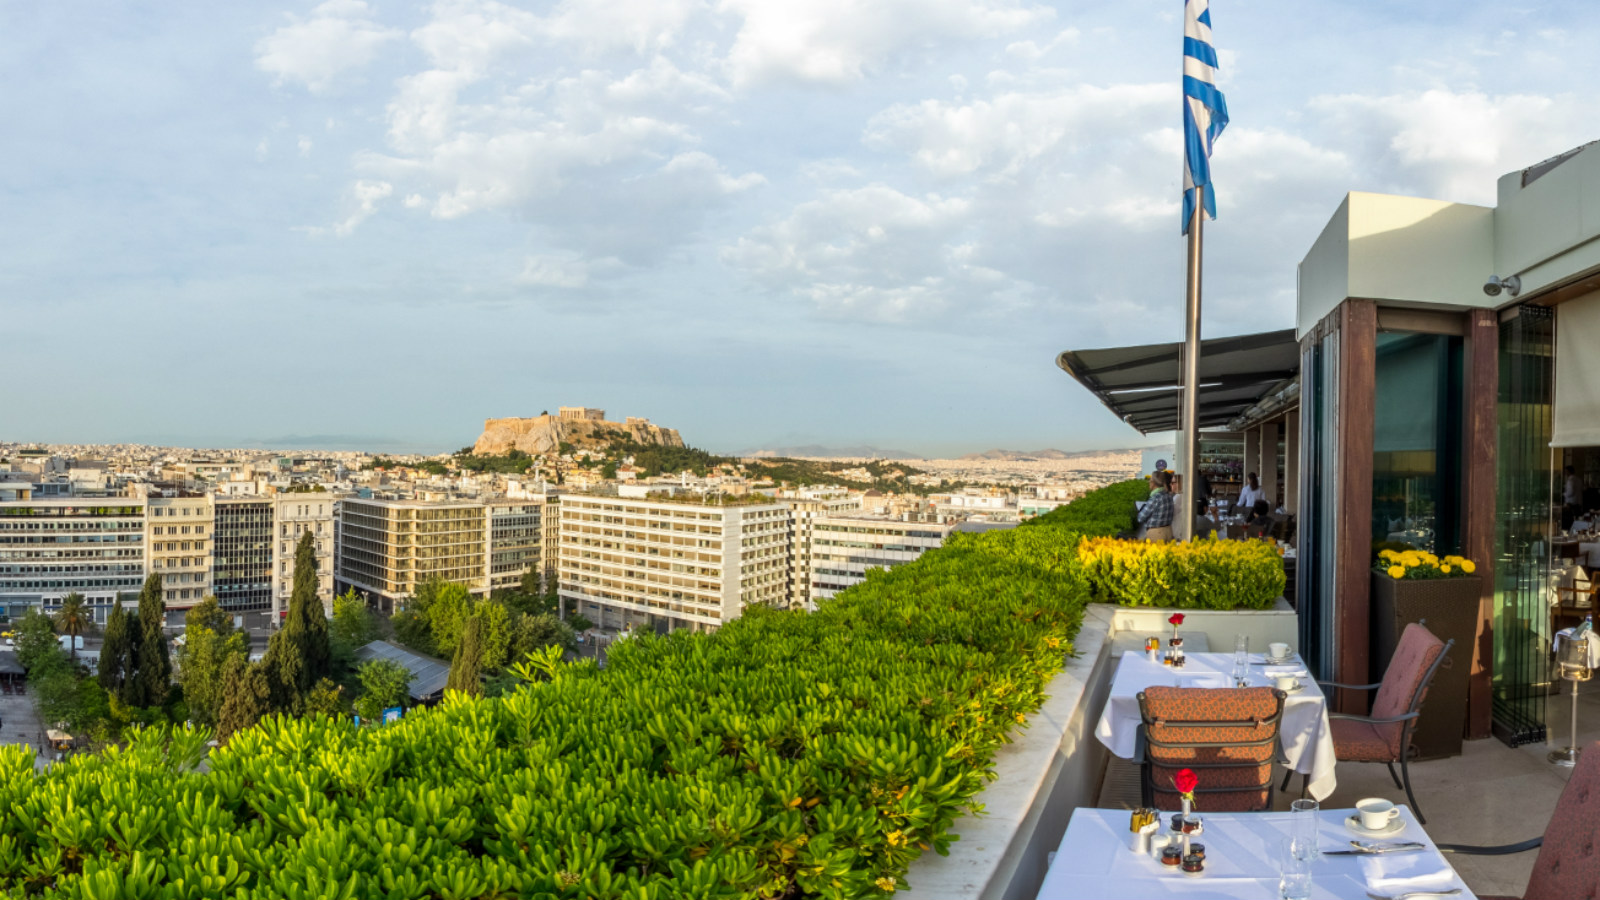 GB Roof Garden Restaurant & Bar at Hotel Grande Bretagne, a Luxury Collection Hotel, Athens